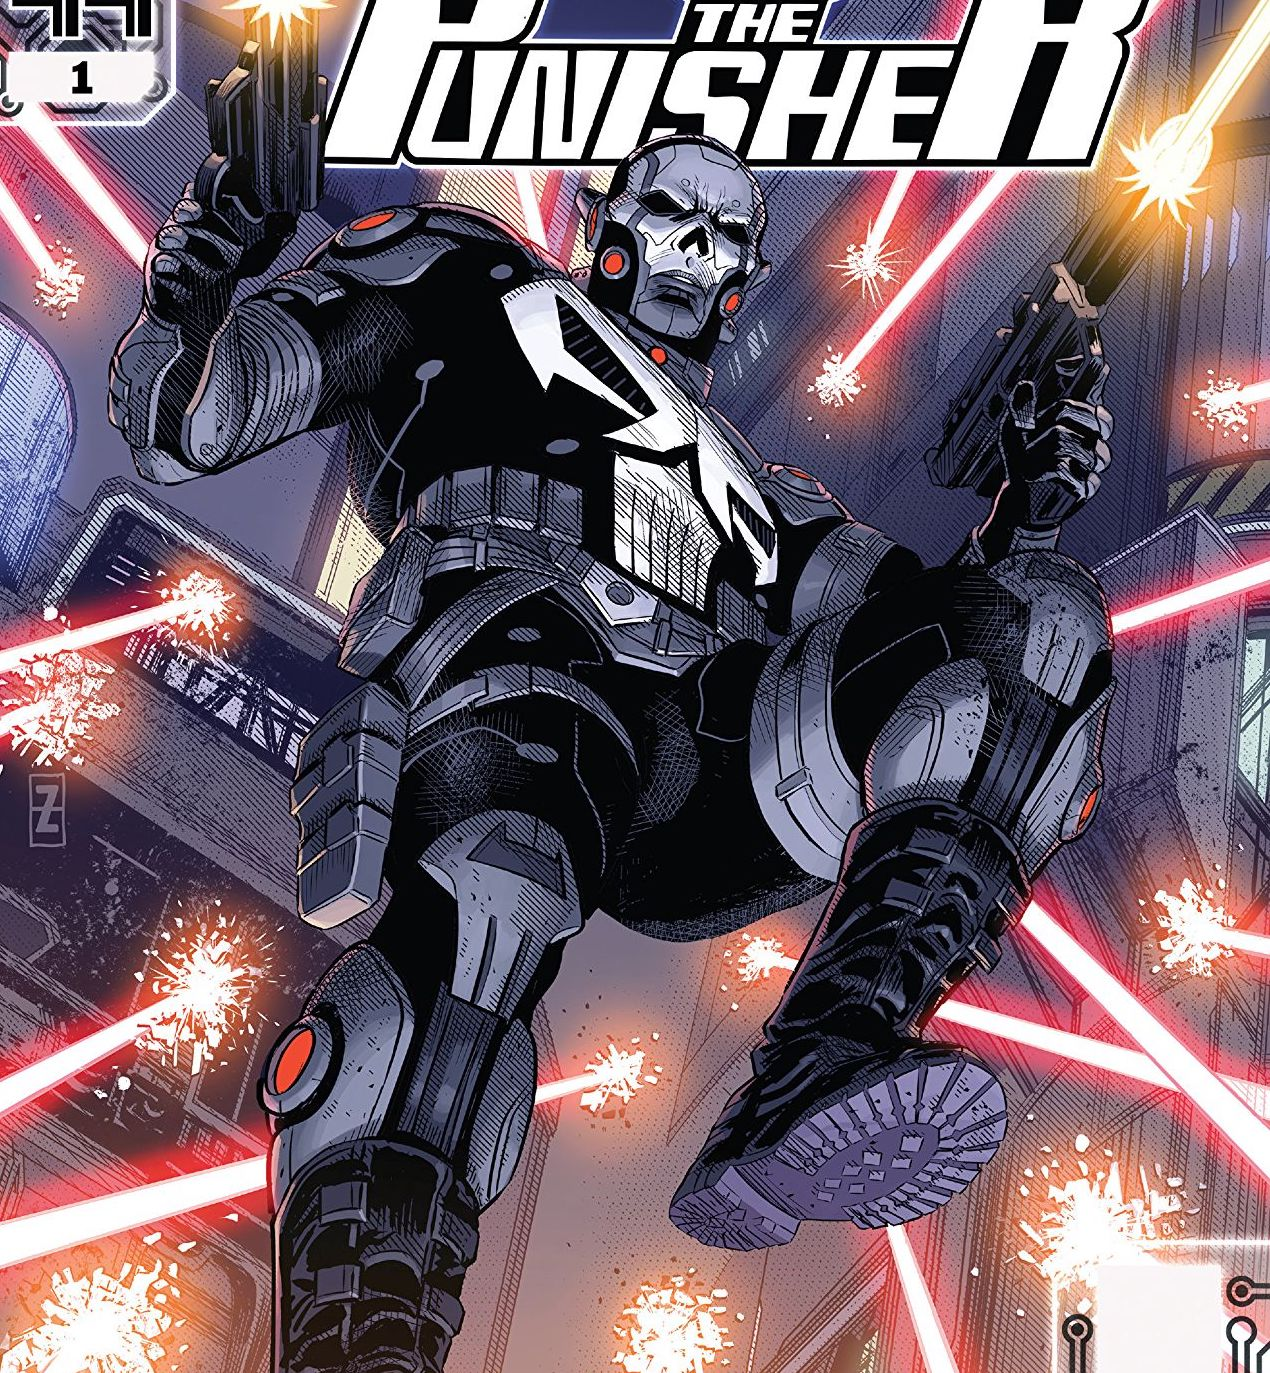 Punisher 2099 #1 Review